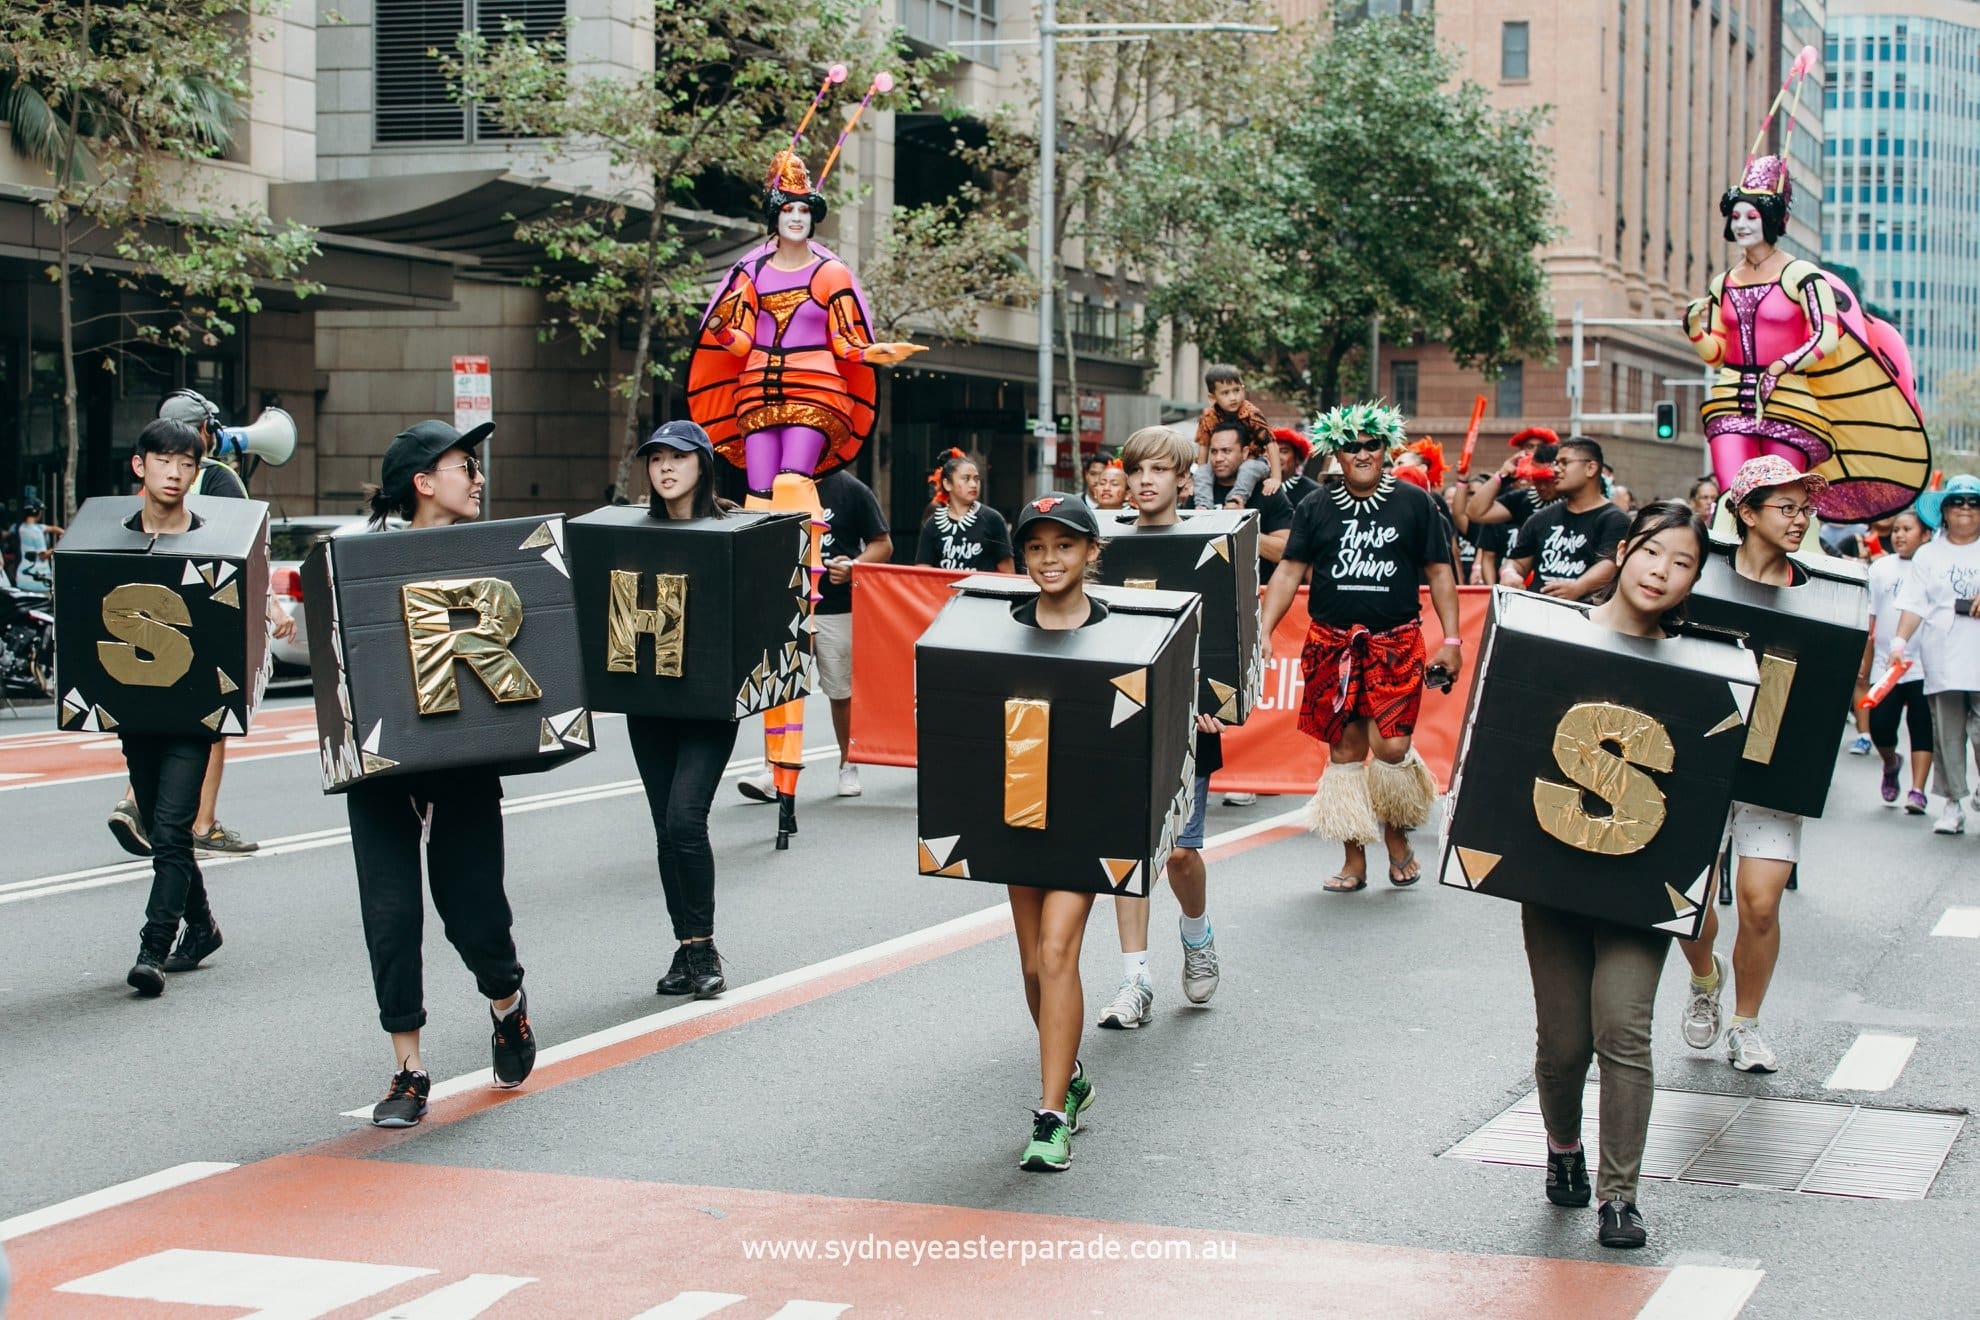 Young people walking through the city wearing colorful boxes with letters in a parade.